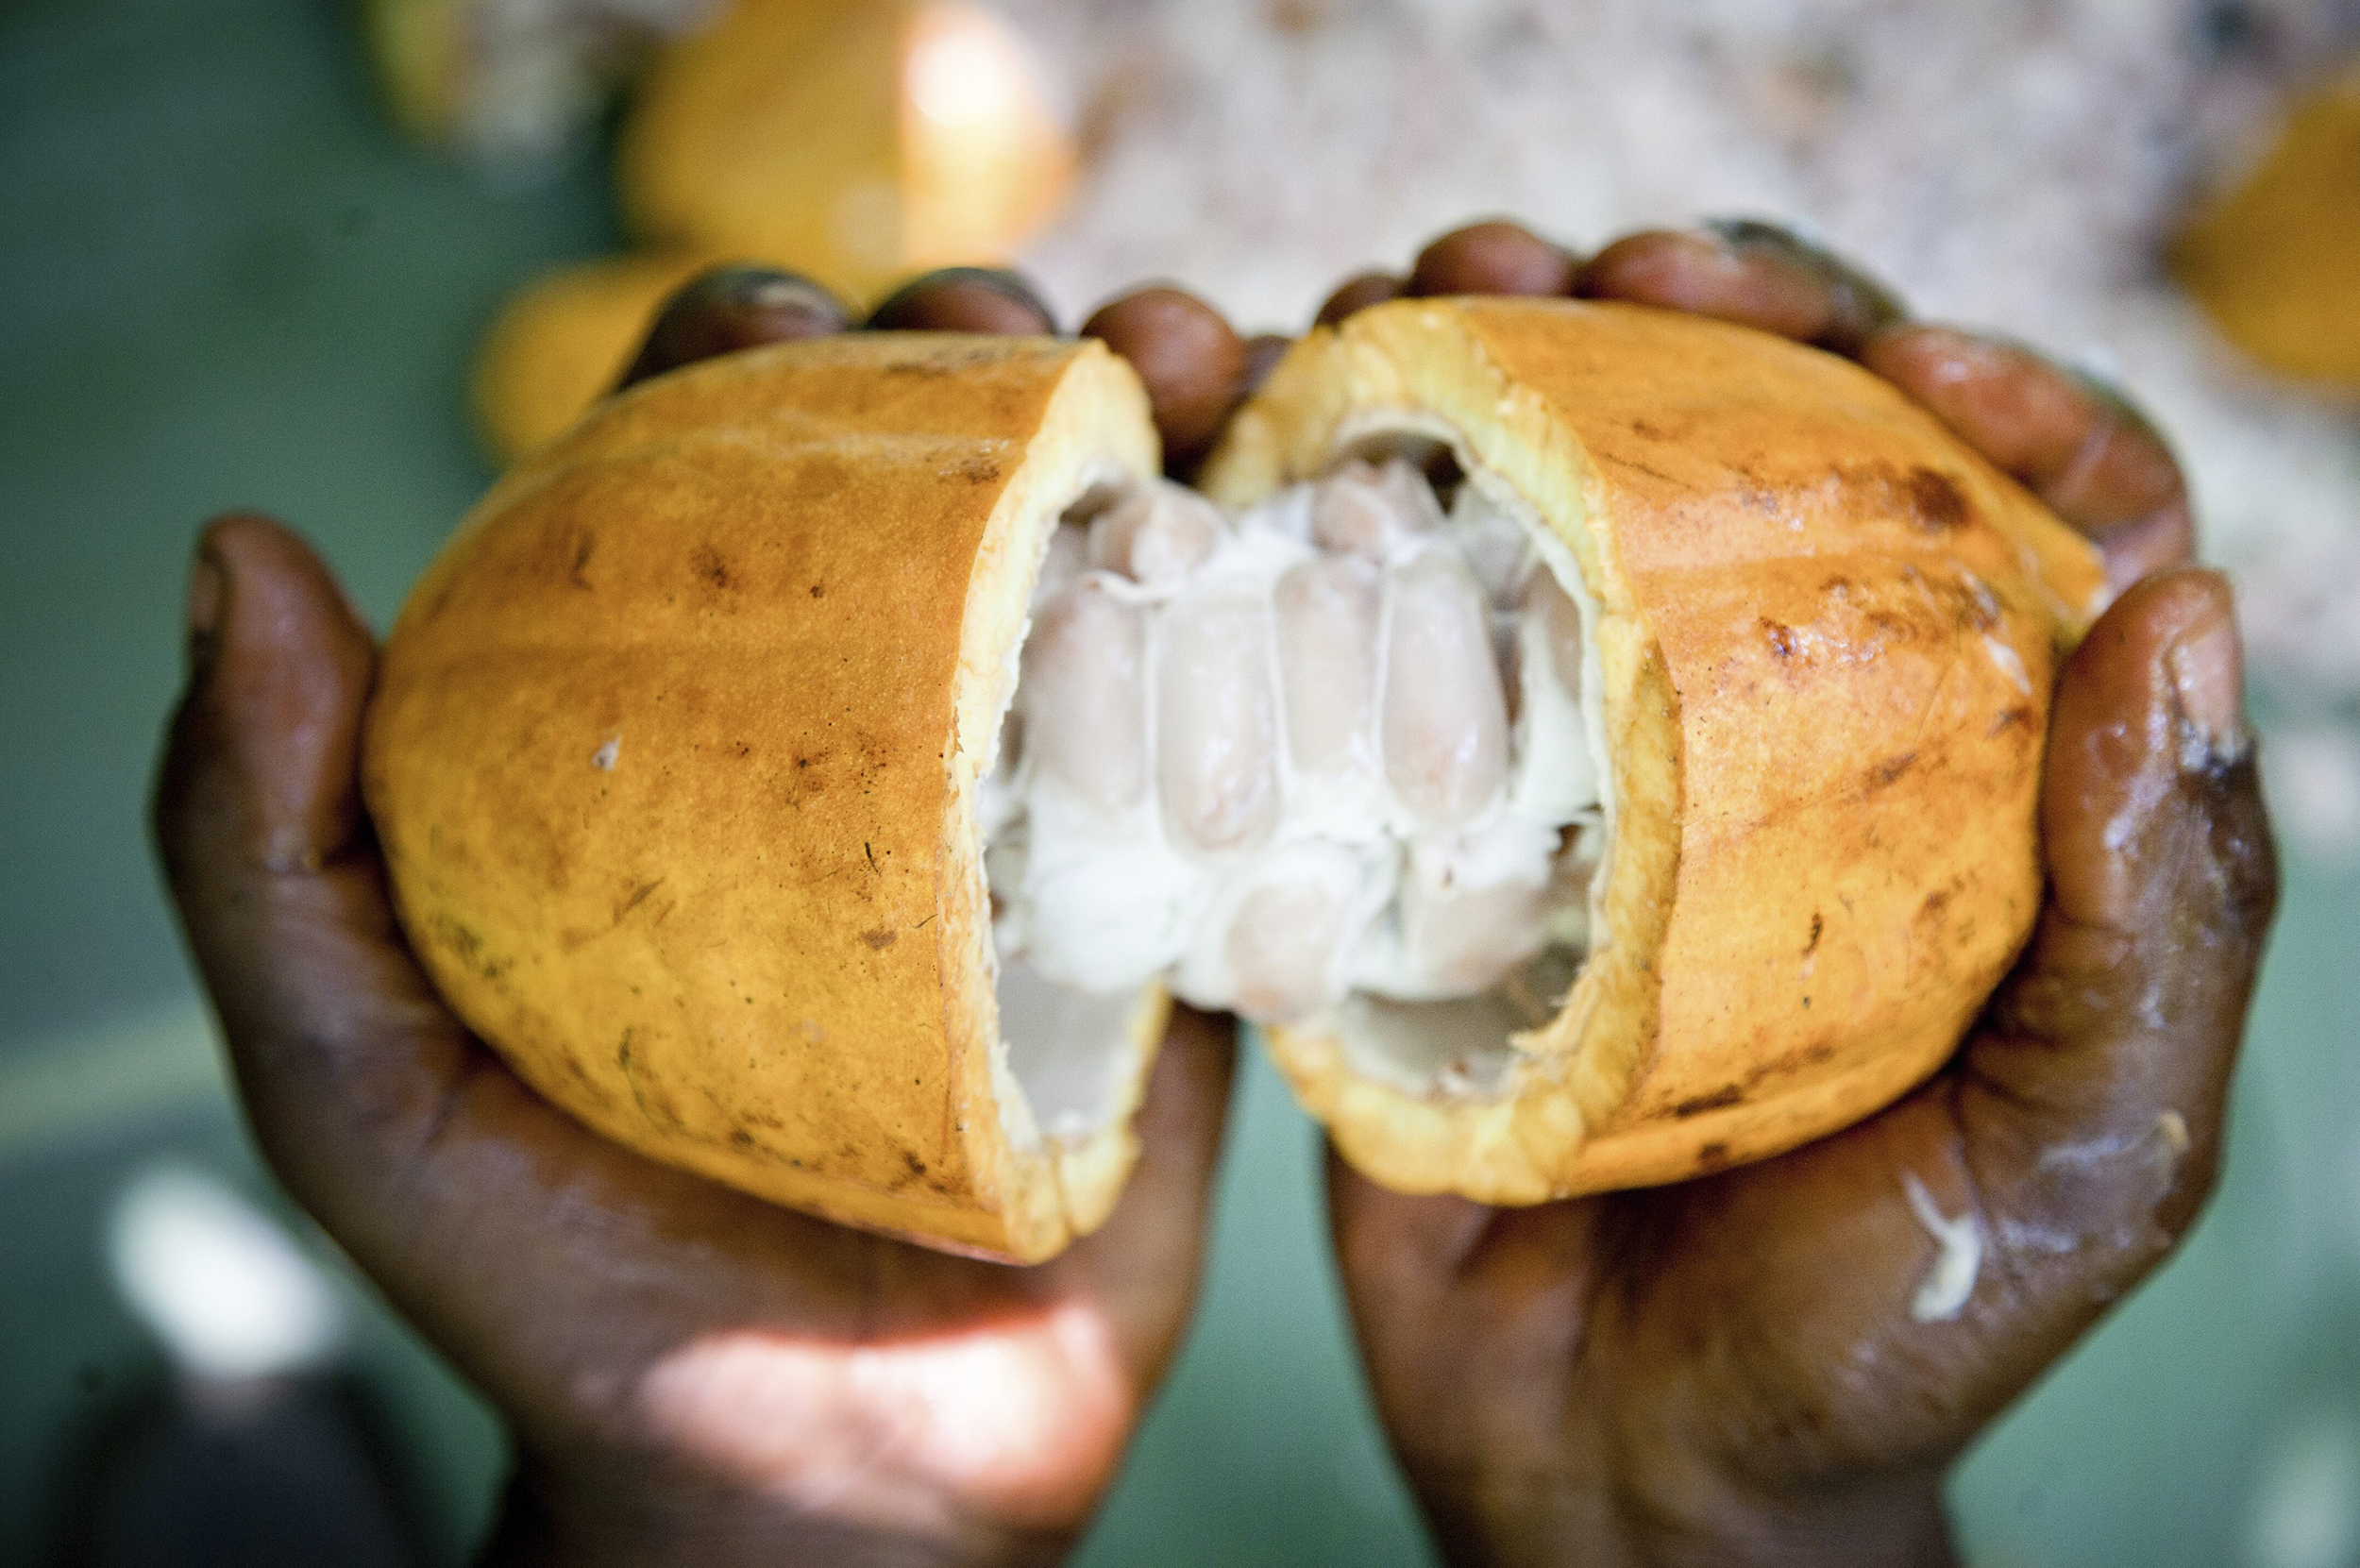 Hands holding cocoa fruit in close up